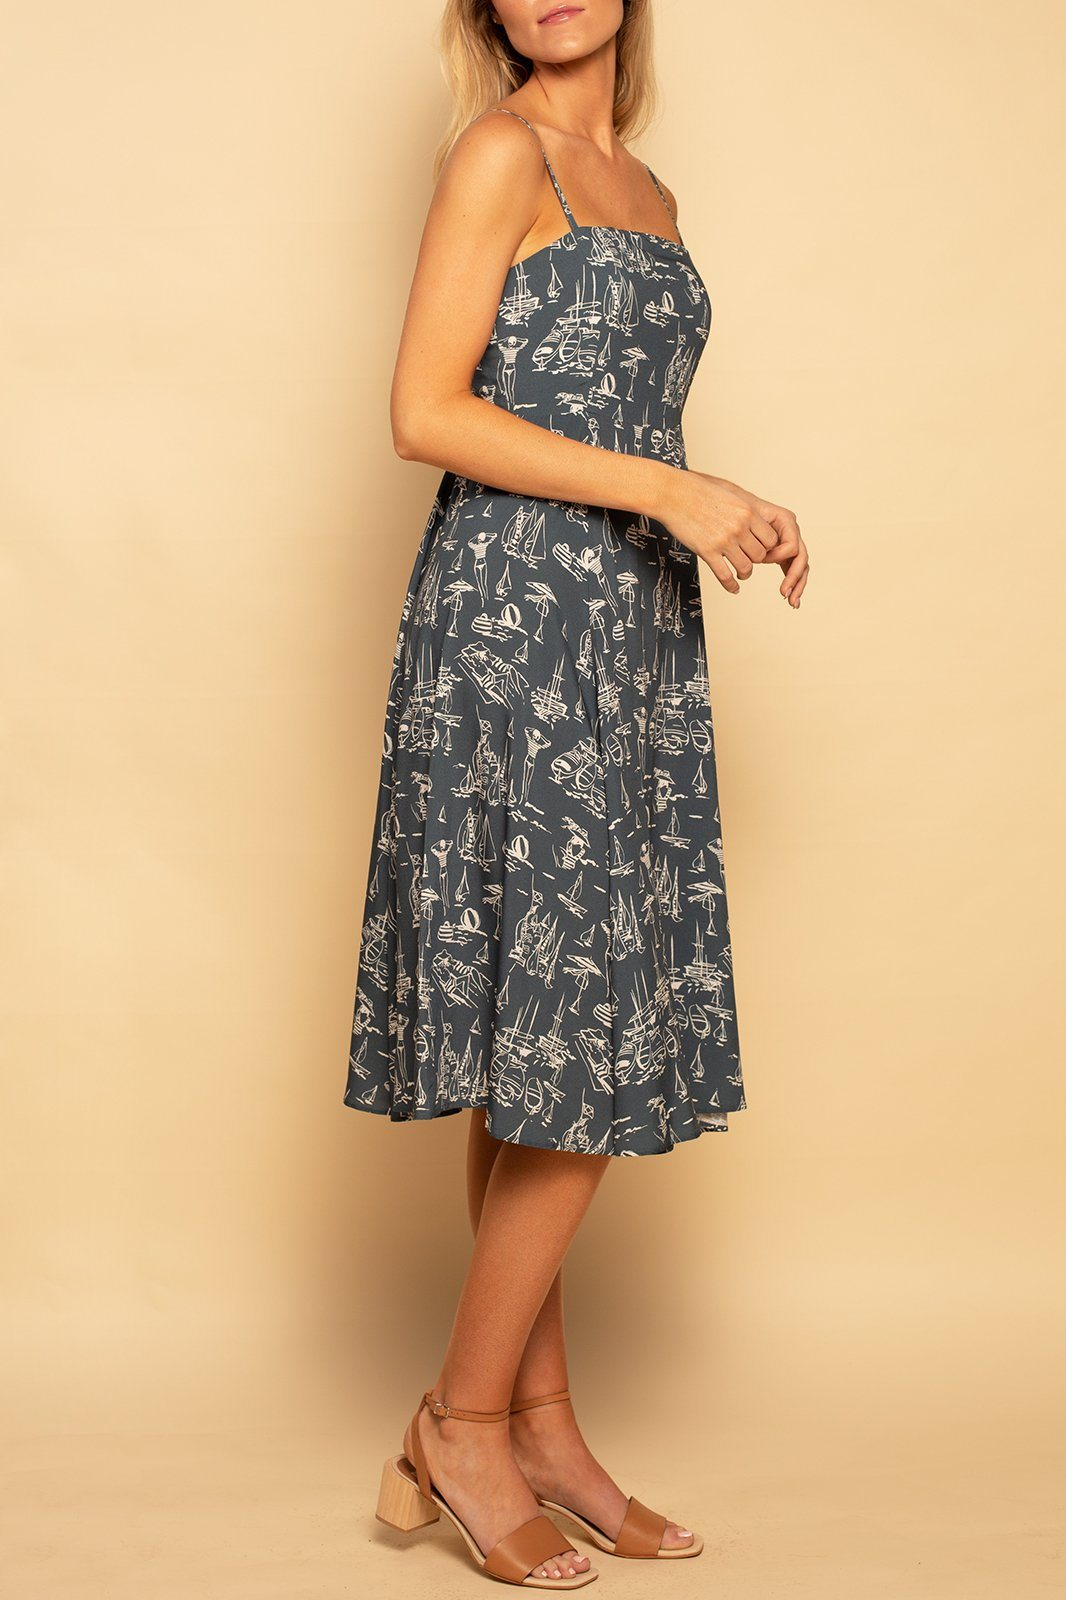 Como Square Neck Dress - Sail Away - Shore